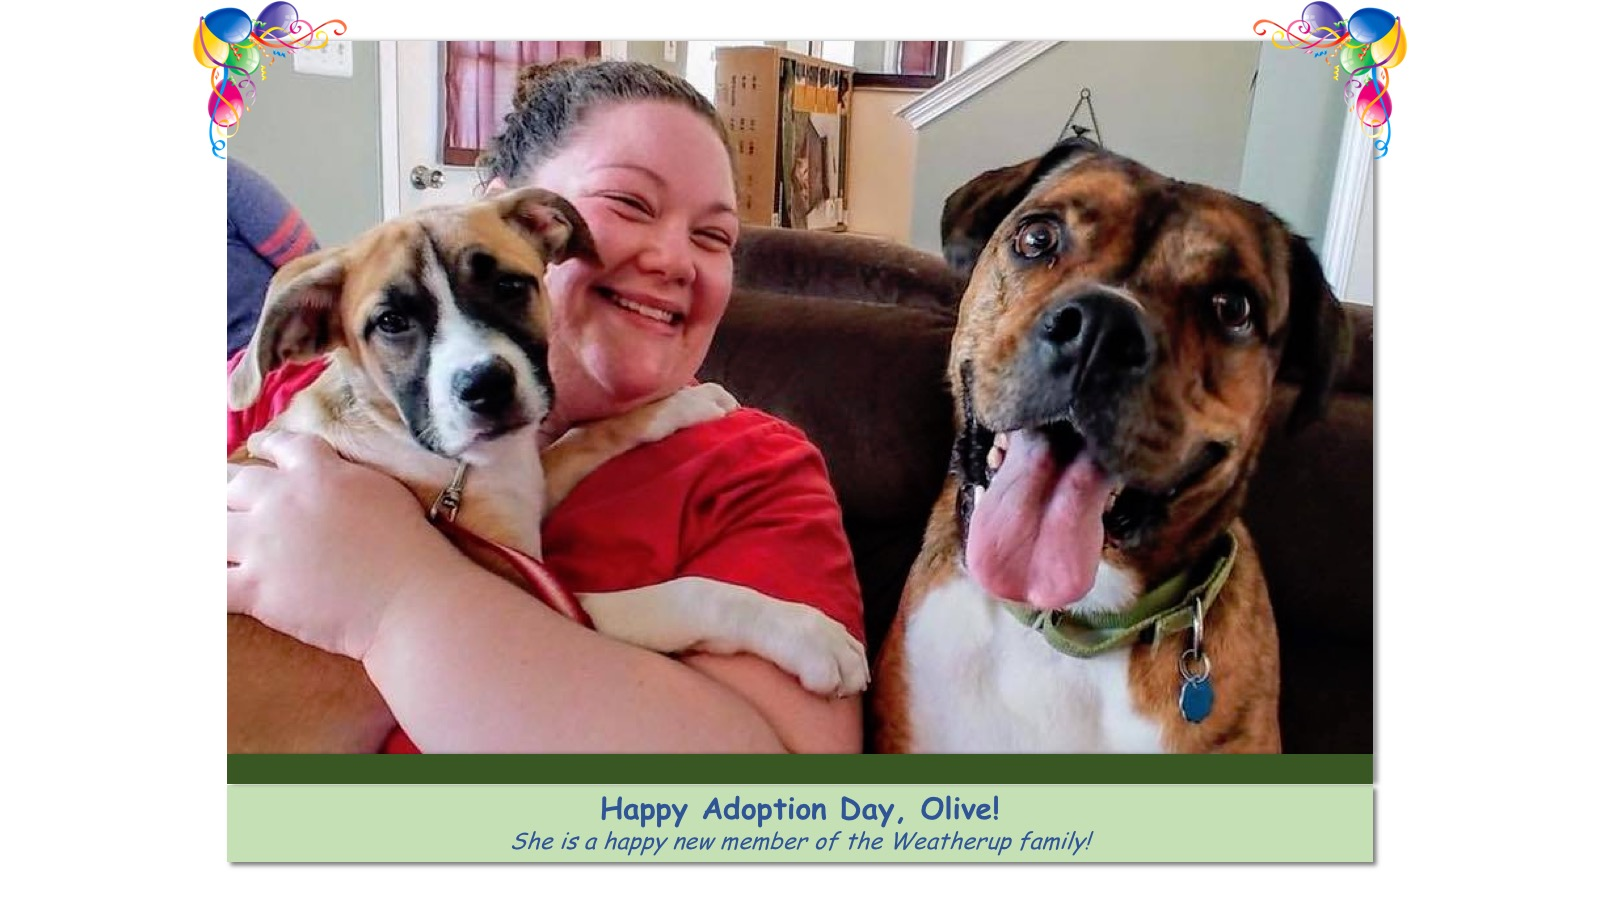 Olive_Adoption_Photo_2018.jpg